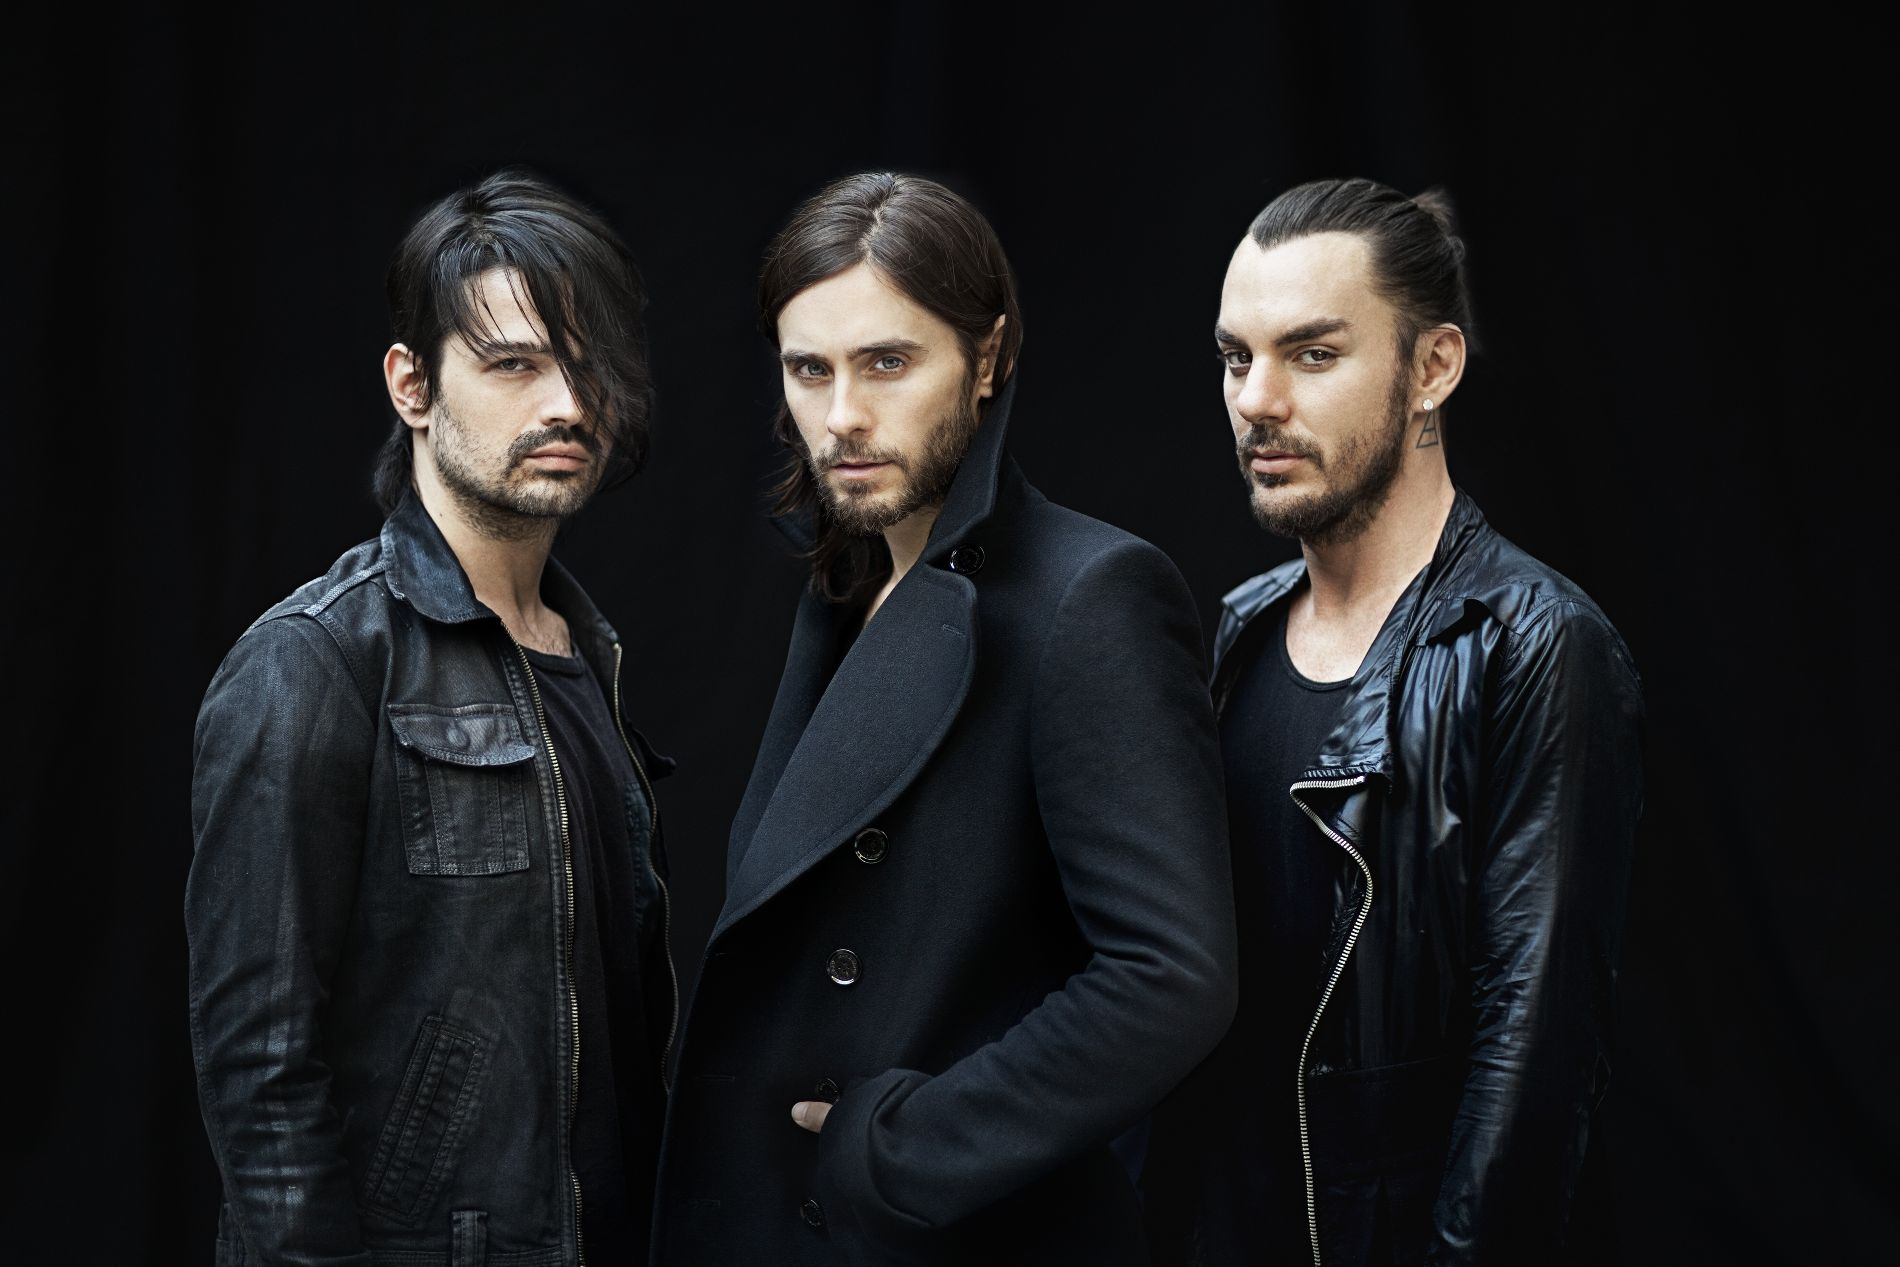 группа 30 seconds to mars картинки